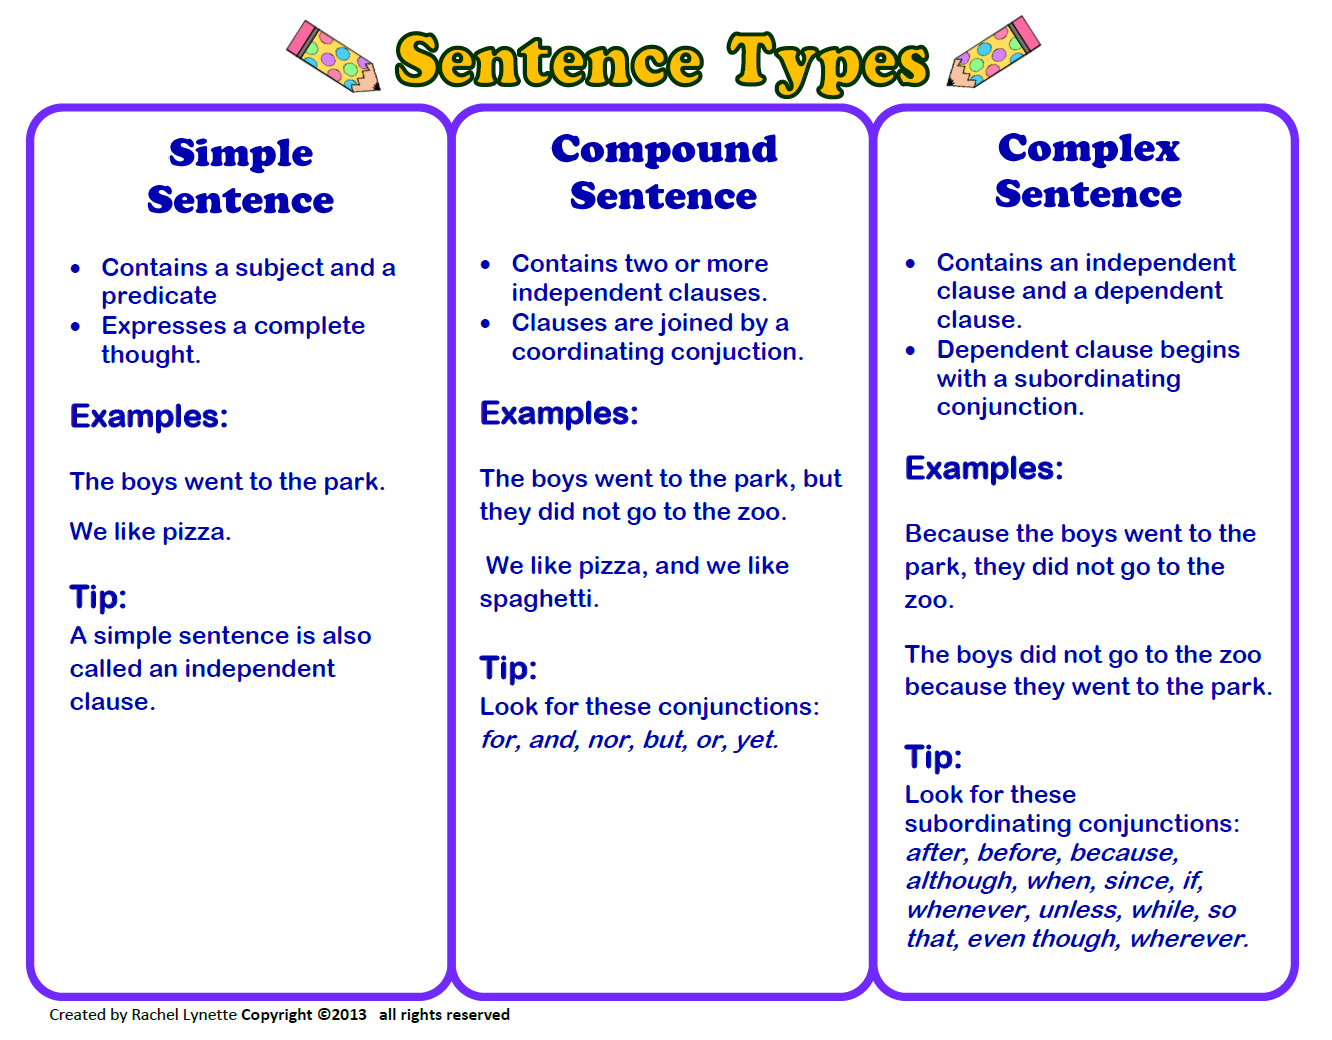 sentence variety in writing One of the problems of student writing is its lack of variety in sentence structure students seem to learn one basic pattern of subject, verb, and object and stick to that without fail.